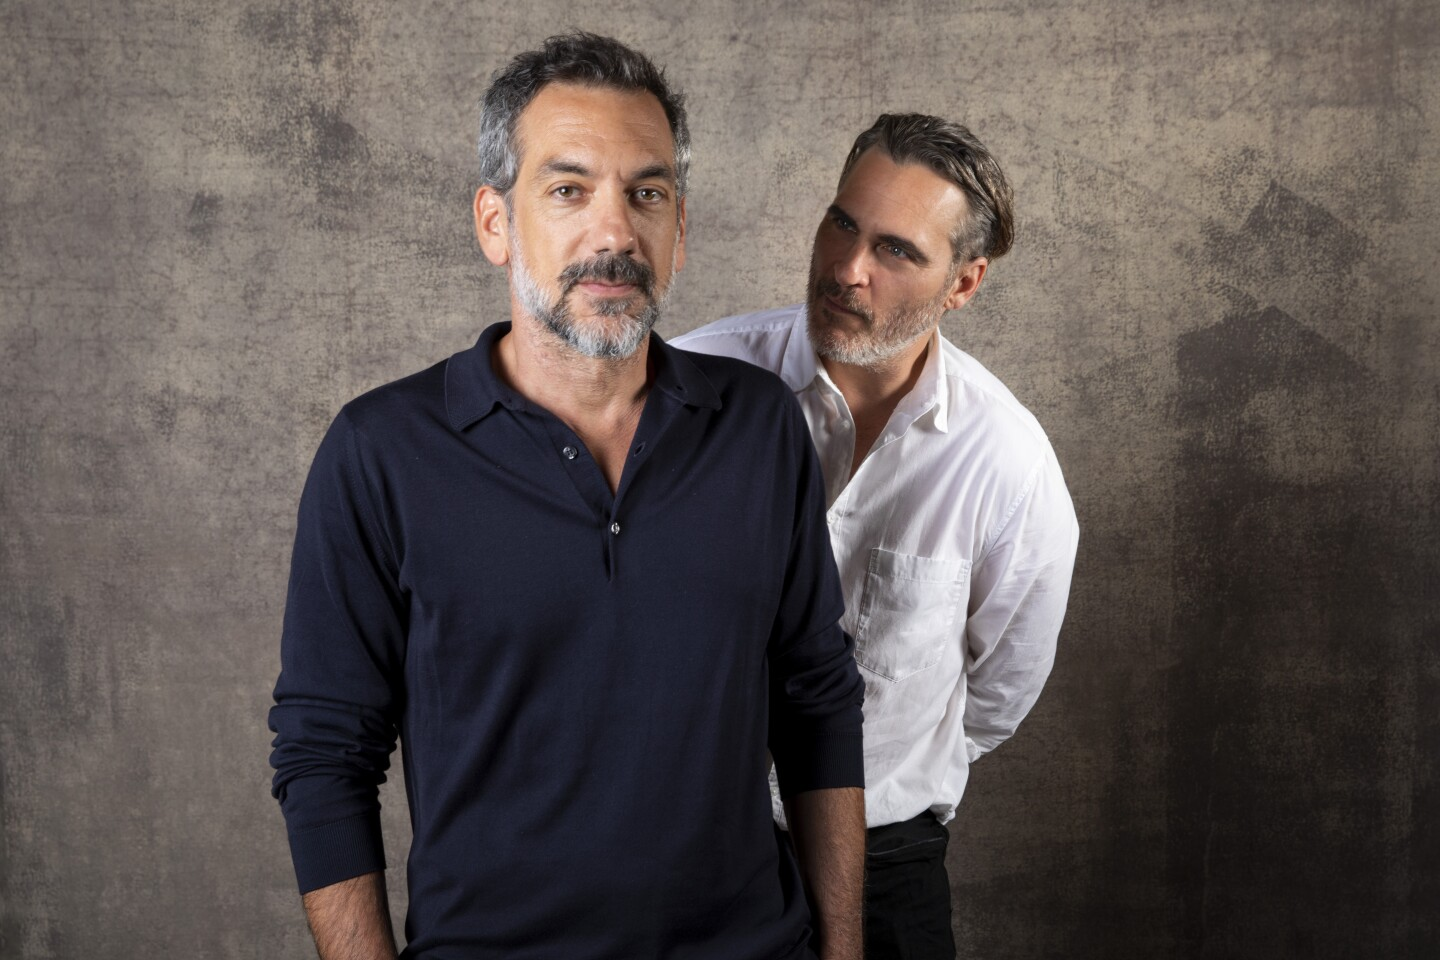 """TORONTO, ONT., CAN -- SEPTEMBER 09, 2019-- Director Todd Phillips and actor Joaquin Phoenix, from the film """"Joker,"""" photographed in the L.A. Times Photo Studio at the Toronto International Film Festival, in Toronto, Ont., Canada on September 09, 2019. (Jay L. Clendenin / Los Angeles Times)"""